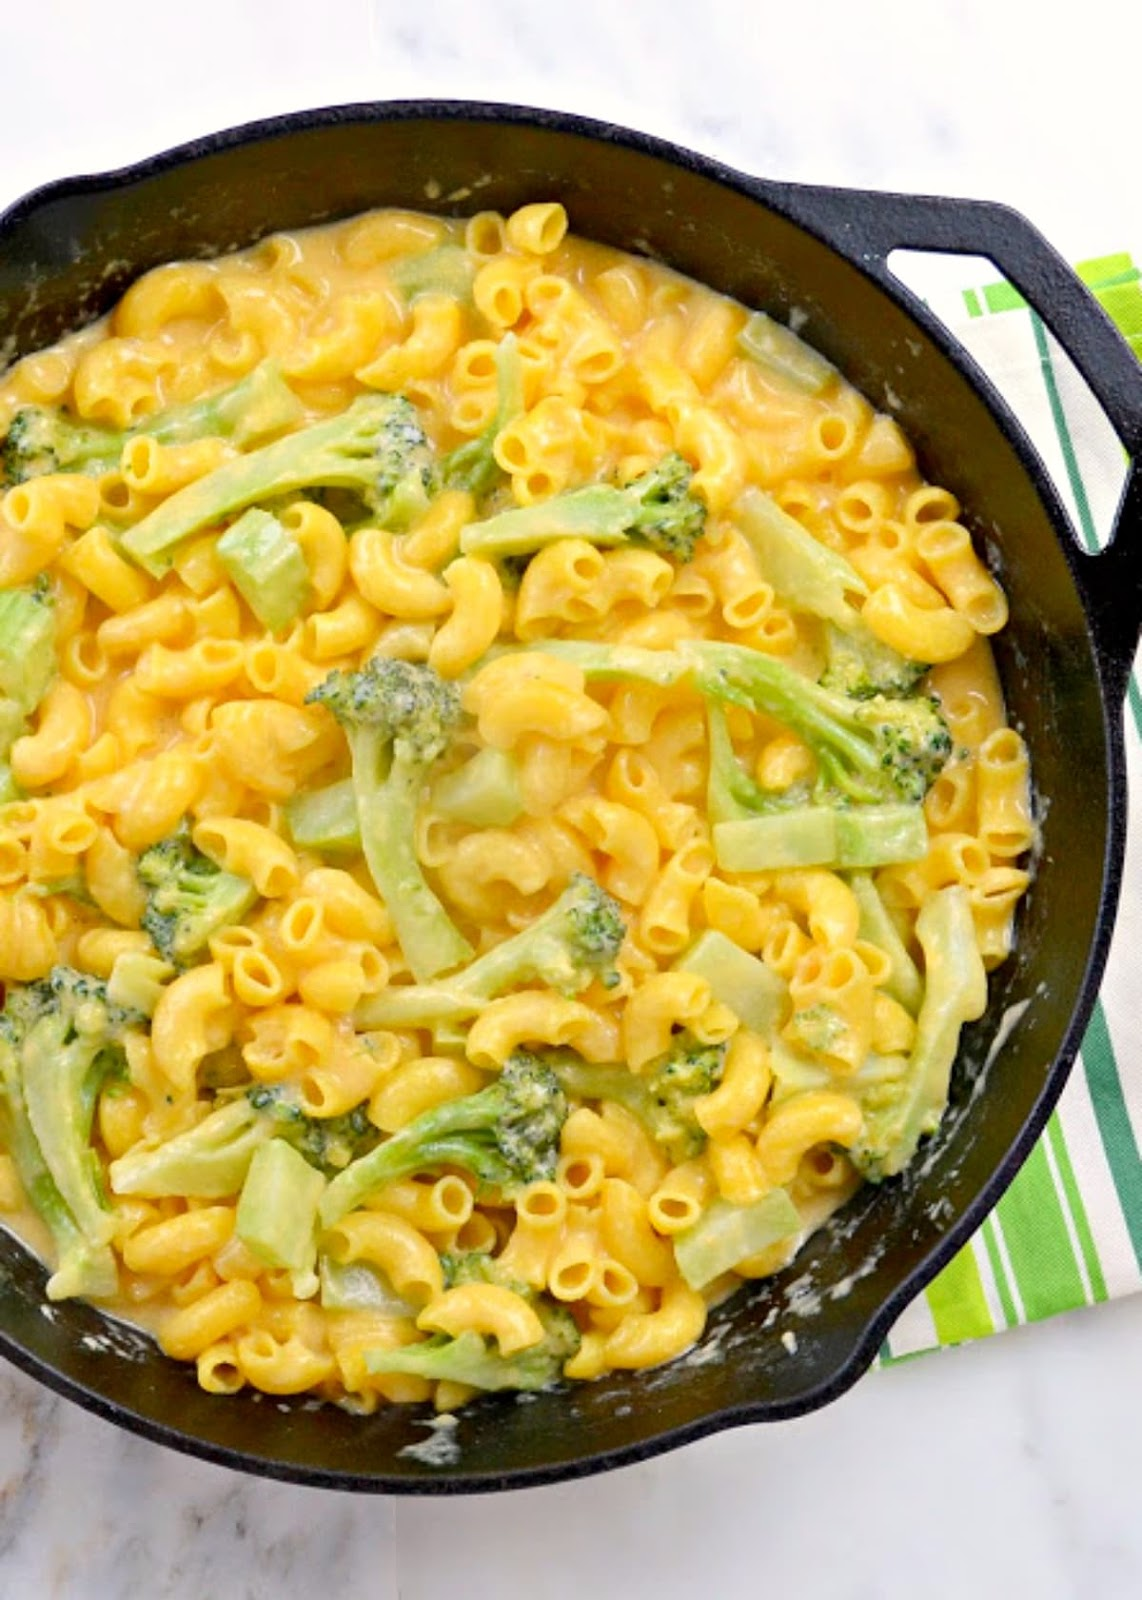 Creamy Macaroni and Cheese with Broccoli in a cast iron skillet with a green and white striped hand towel.